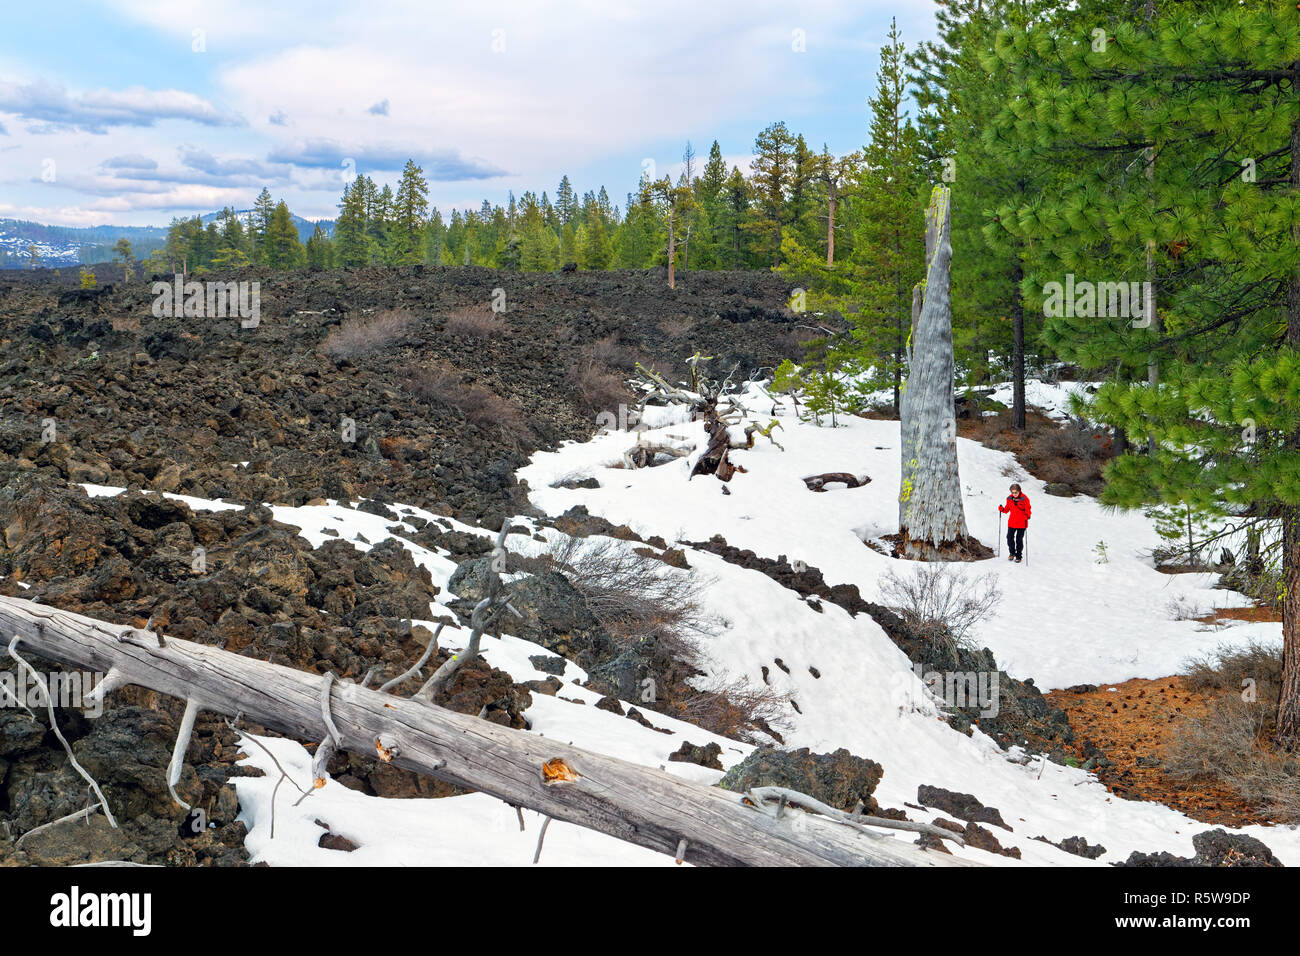 42,834.01755 Woman hiking in winter standing by a snowy black lava bed with dead trees on edge of Ponderosa pine trees (Pinus ponderosa) forest - Stock Image